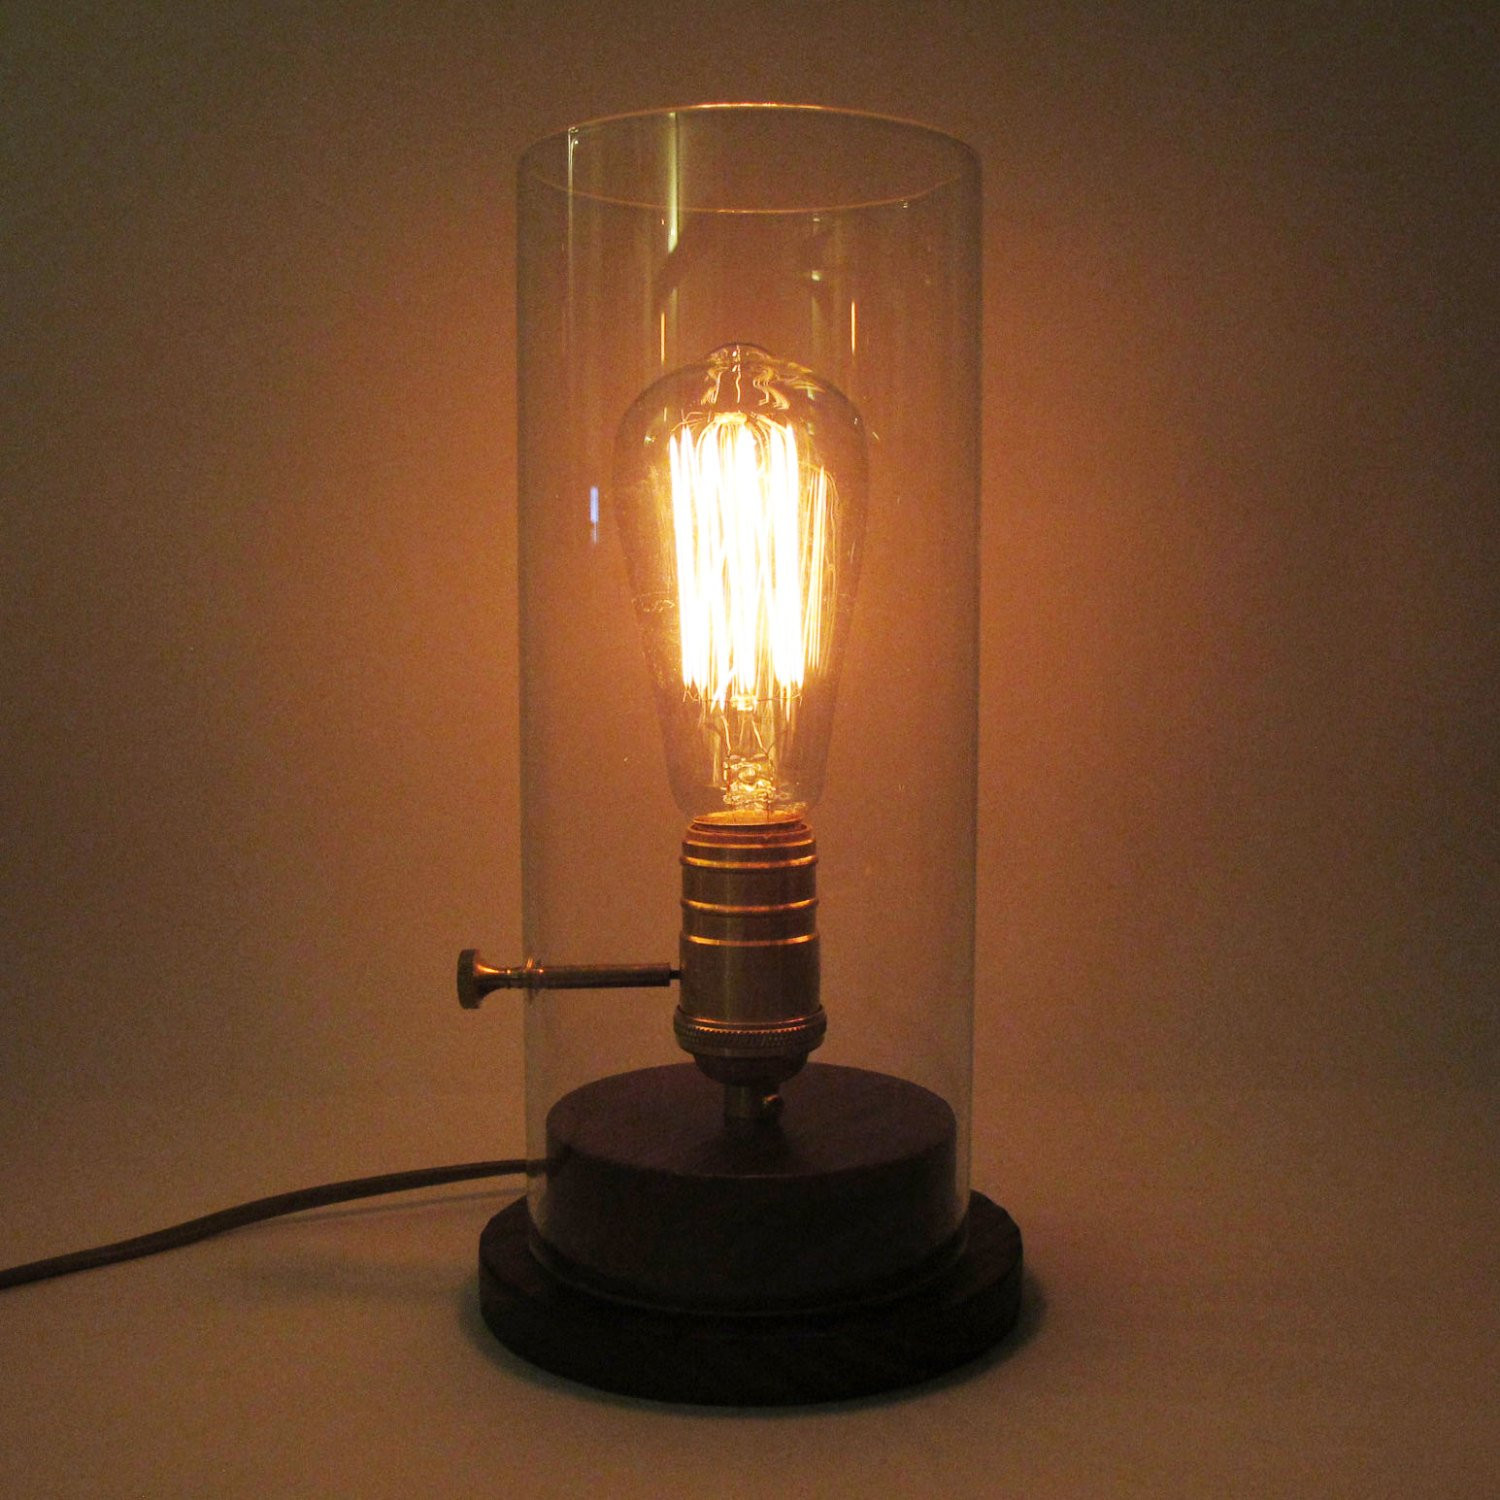 Best ideas about Edison Desk Lamp . Save or Pin Edison Glass Desk Wood Lamp edison bulb desk lamp Now.